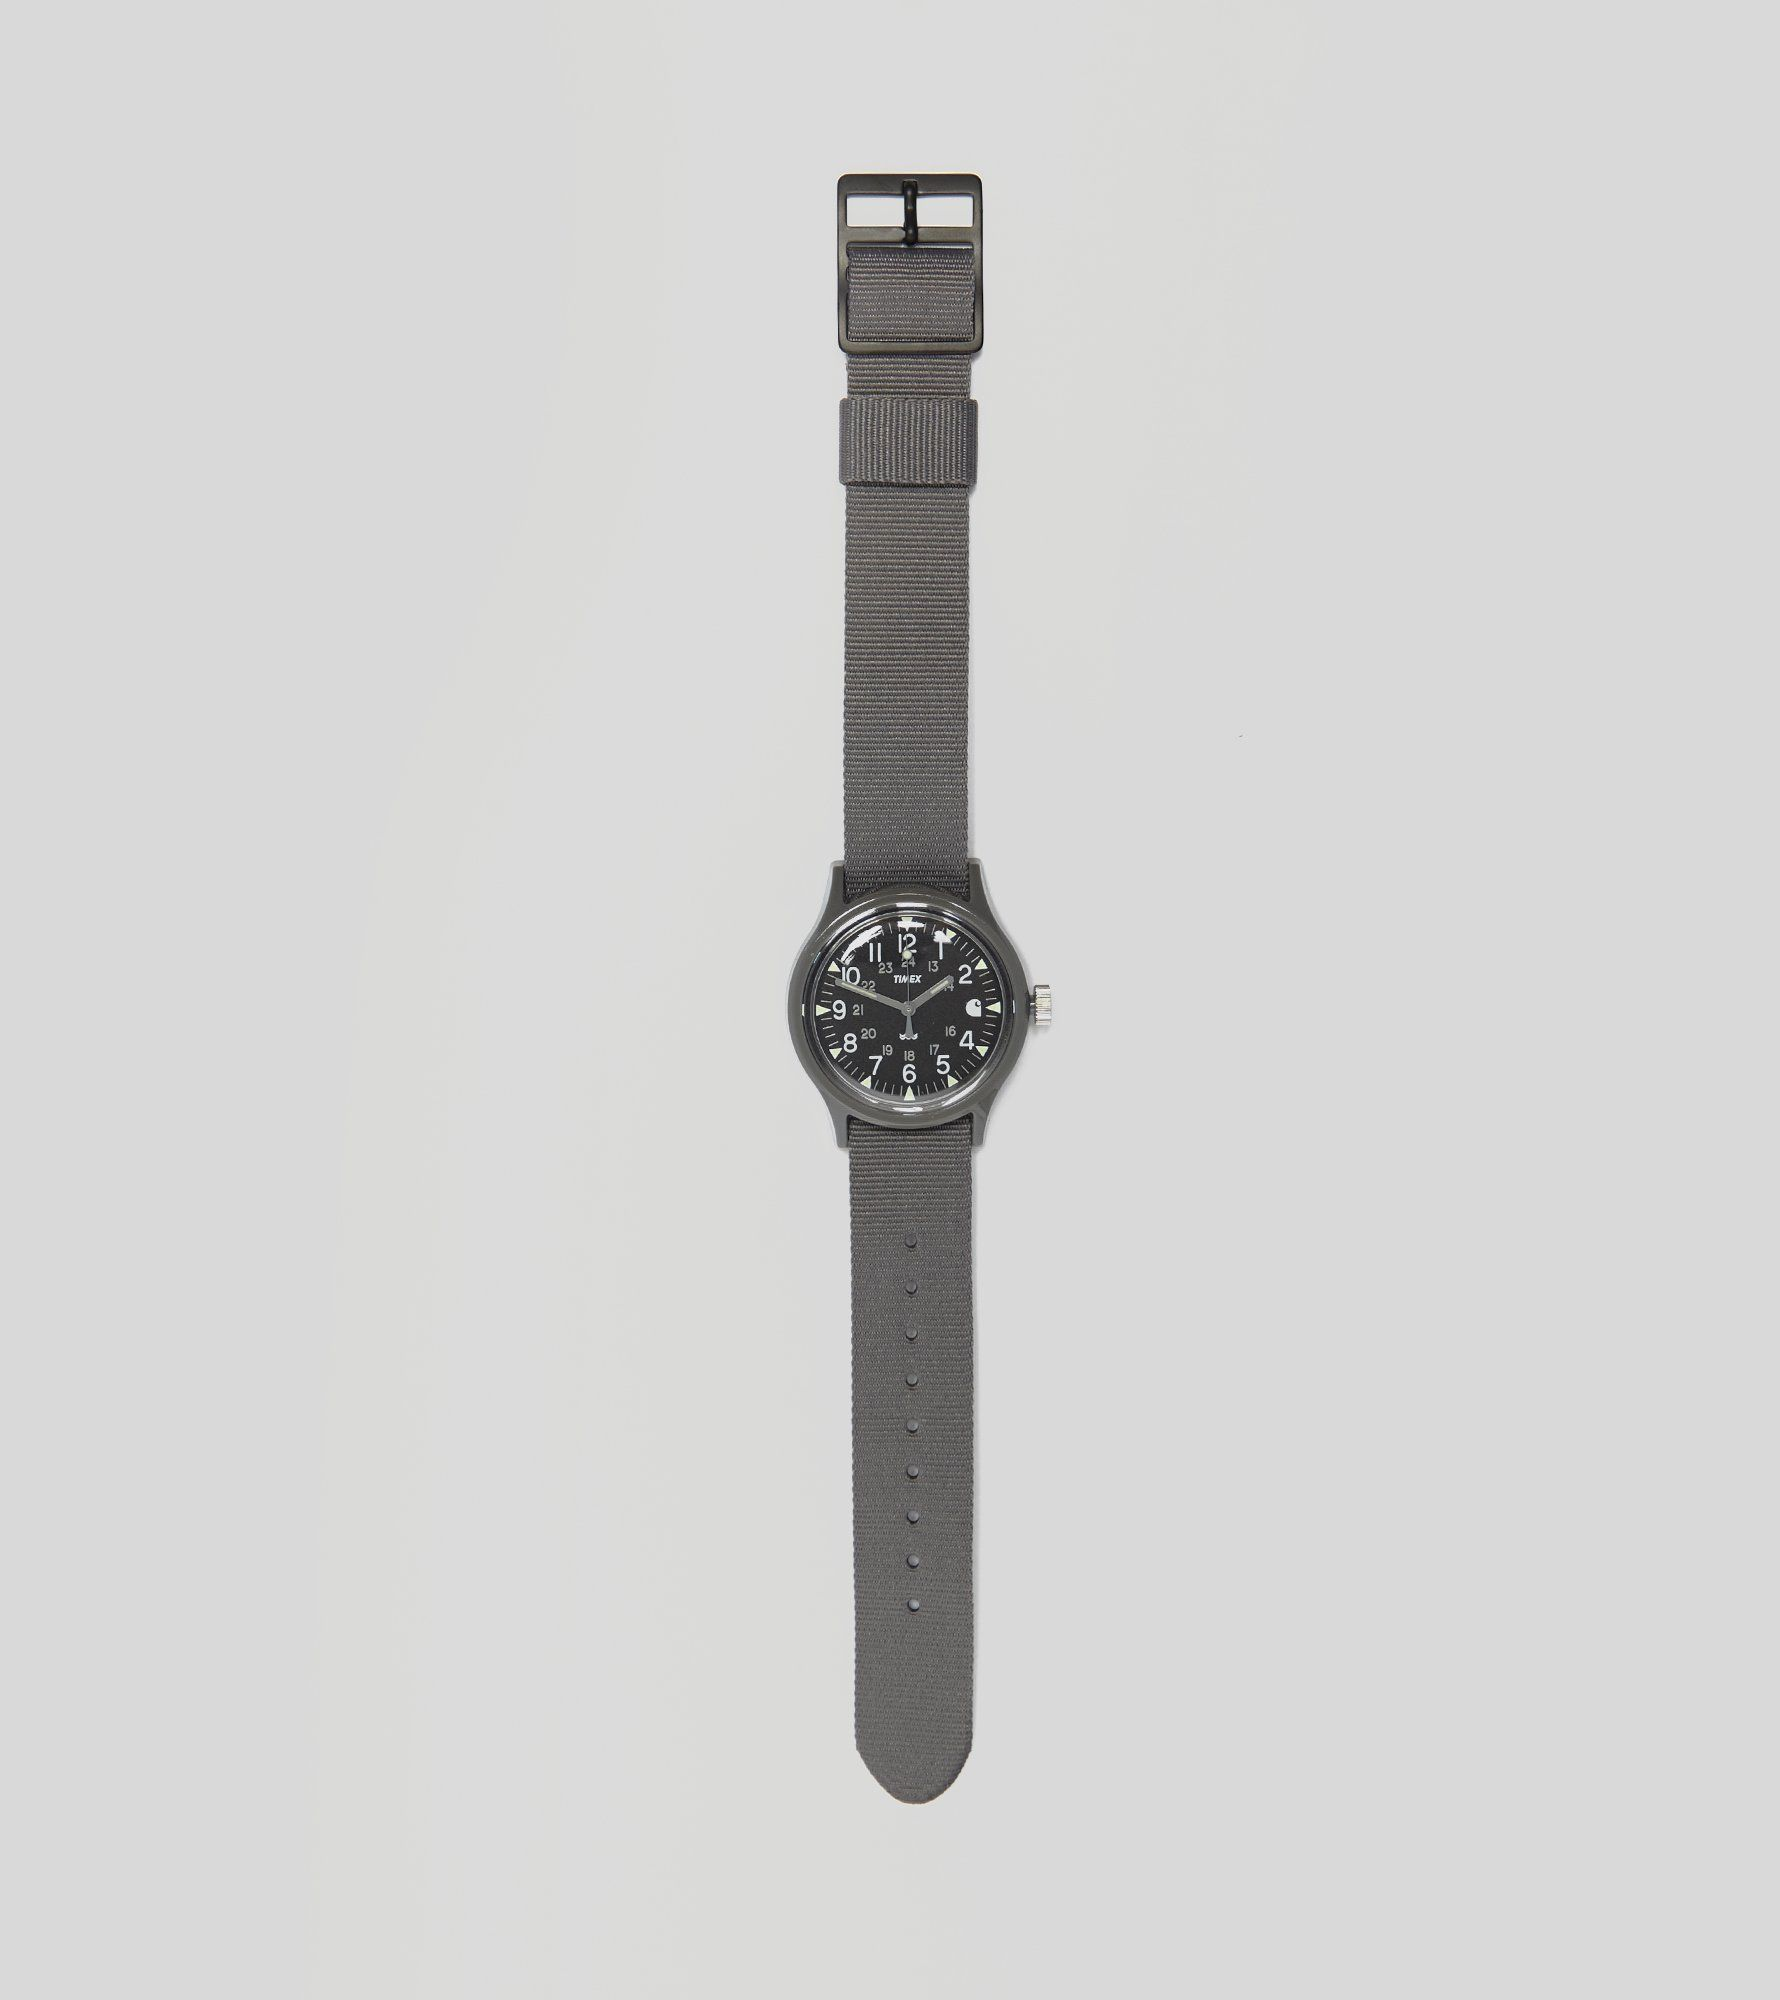 Carhartt WIP x Timex Watch